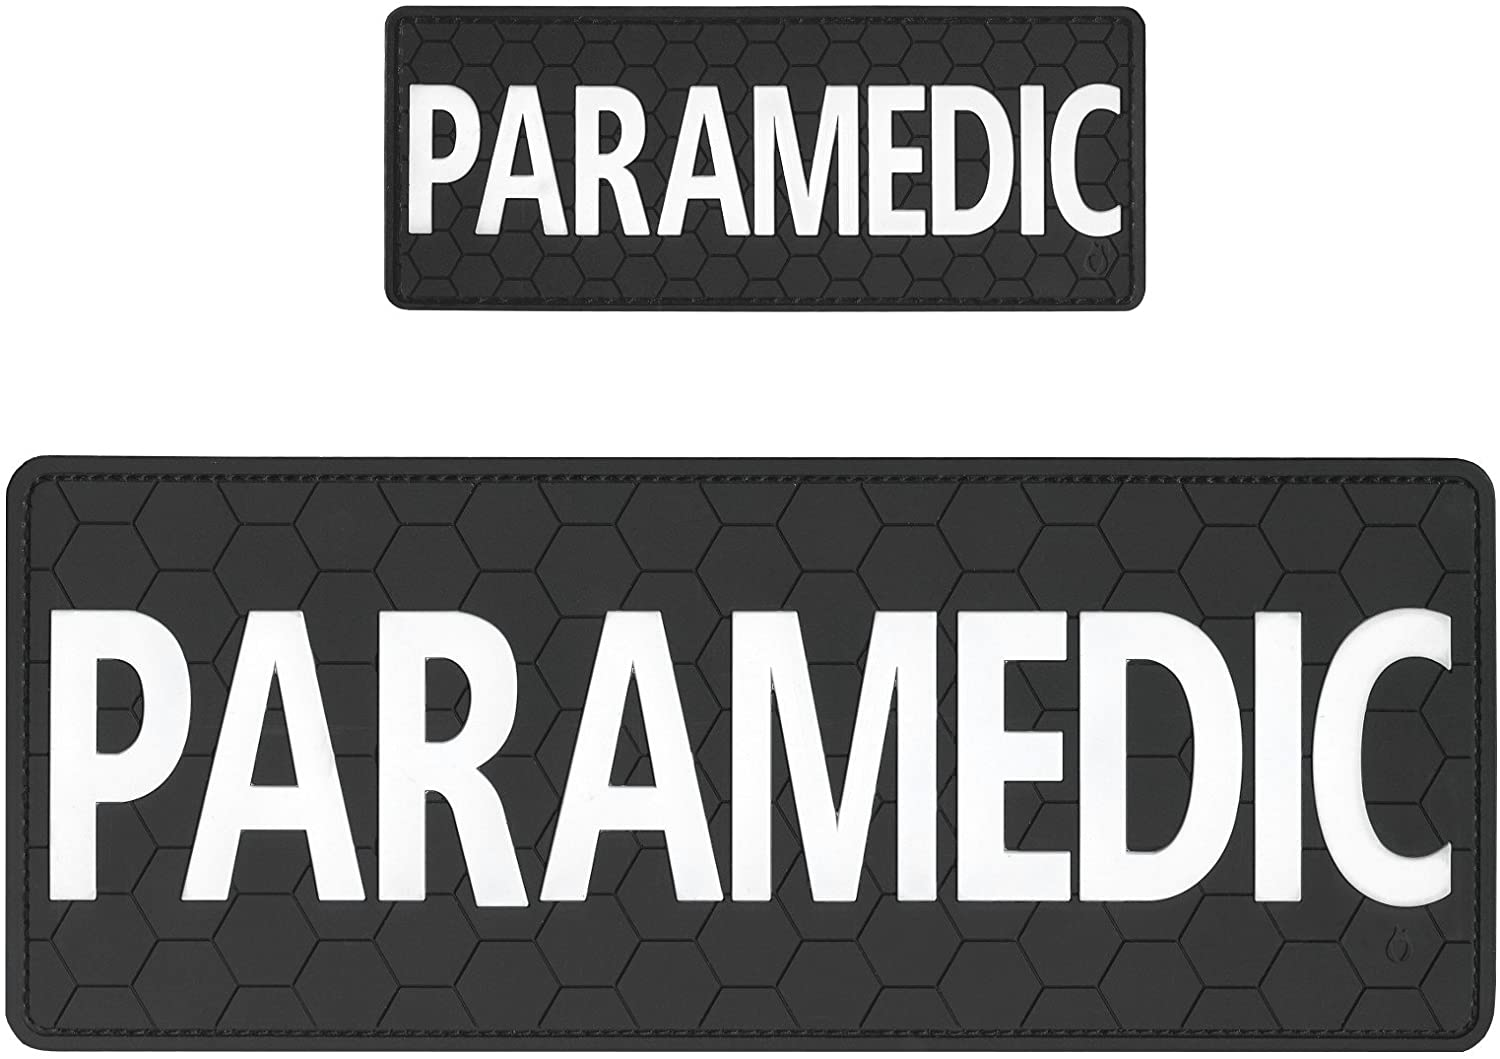 LEGEEON Set of 2 PVC Rubber Touch Fastener Patches Paramedic EMS EMT Plate Carrier Body Armor Medical